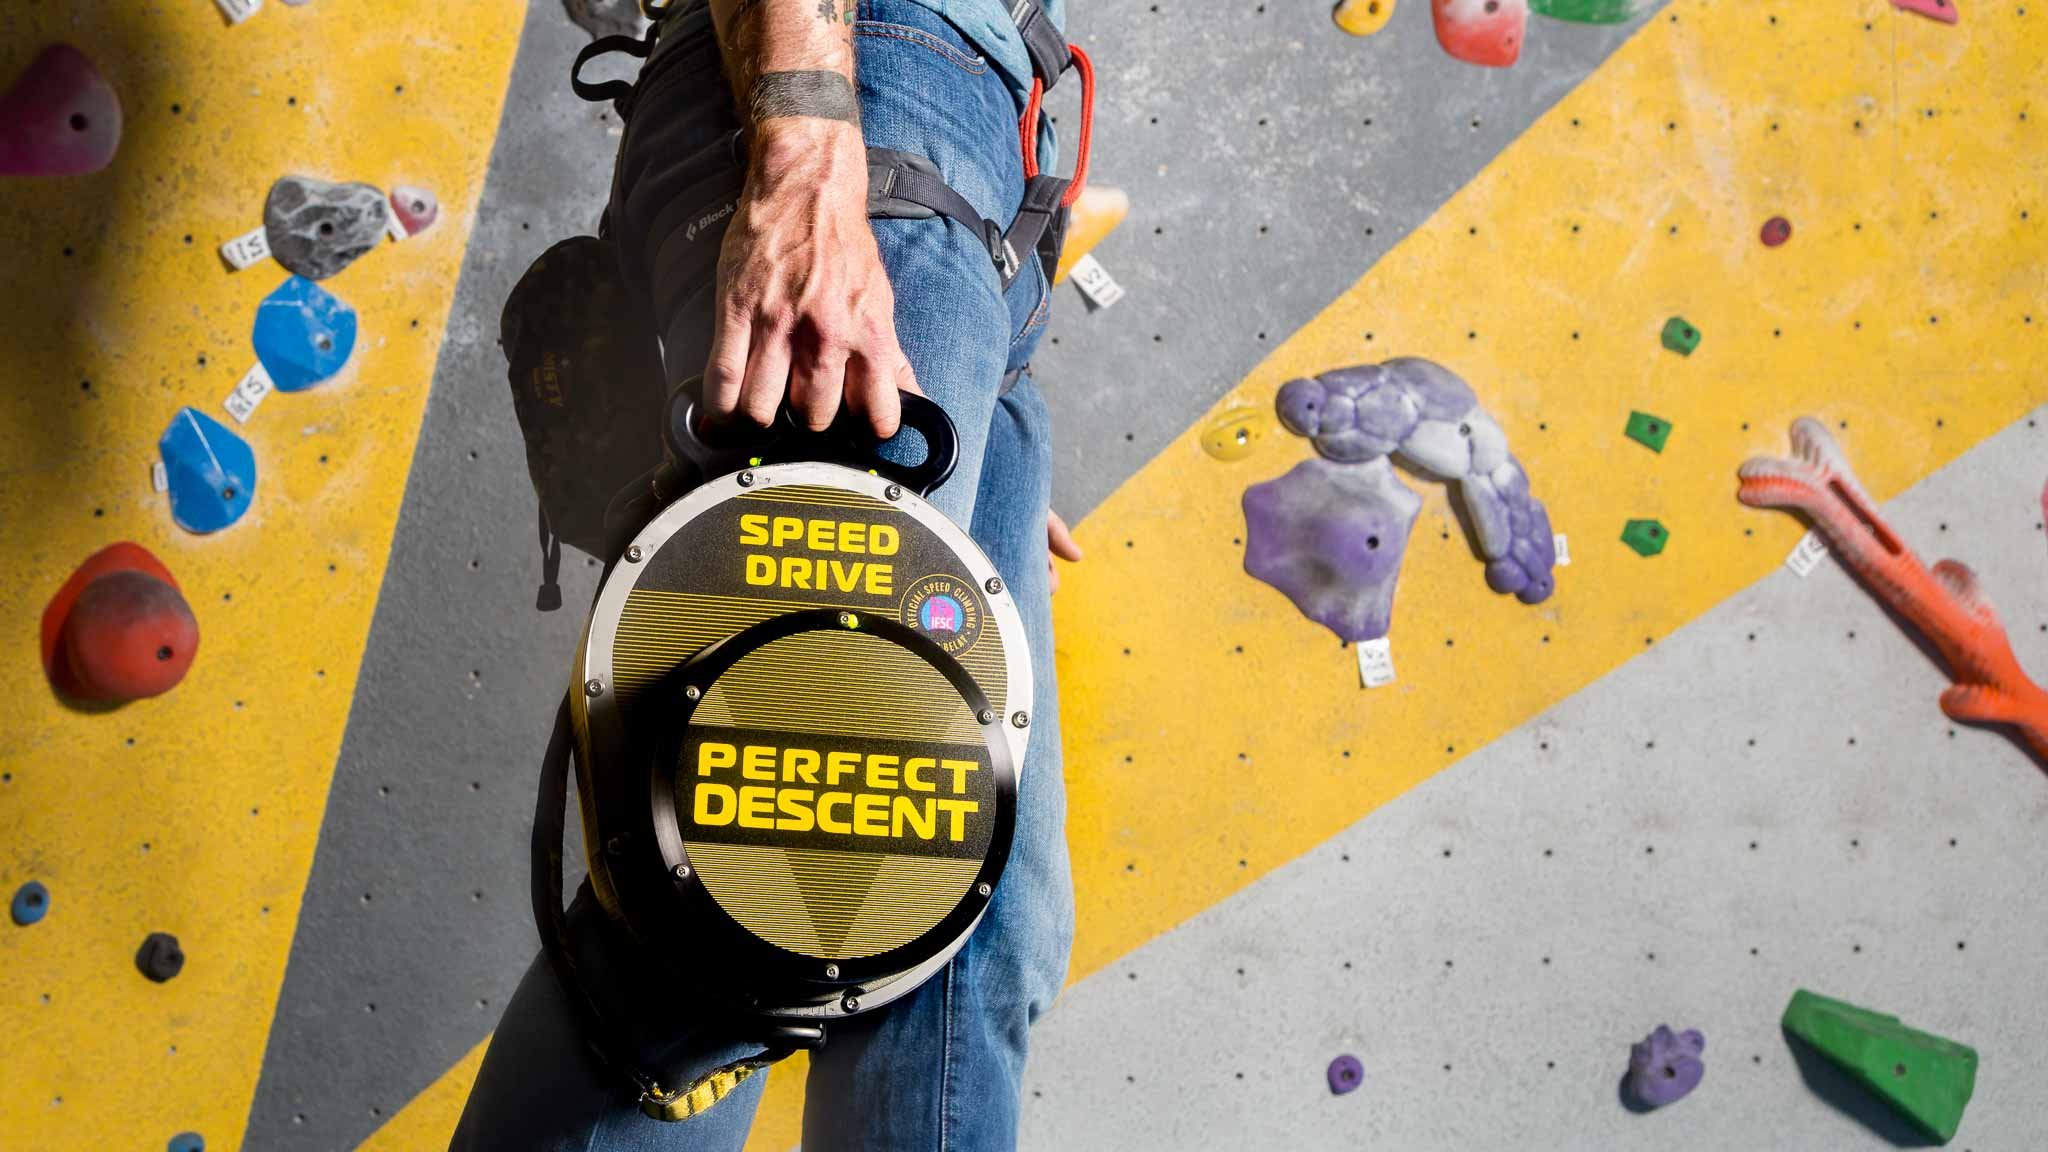 perfect-descent-speed-drive-auto-belay-man-carrying